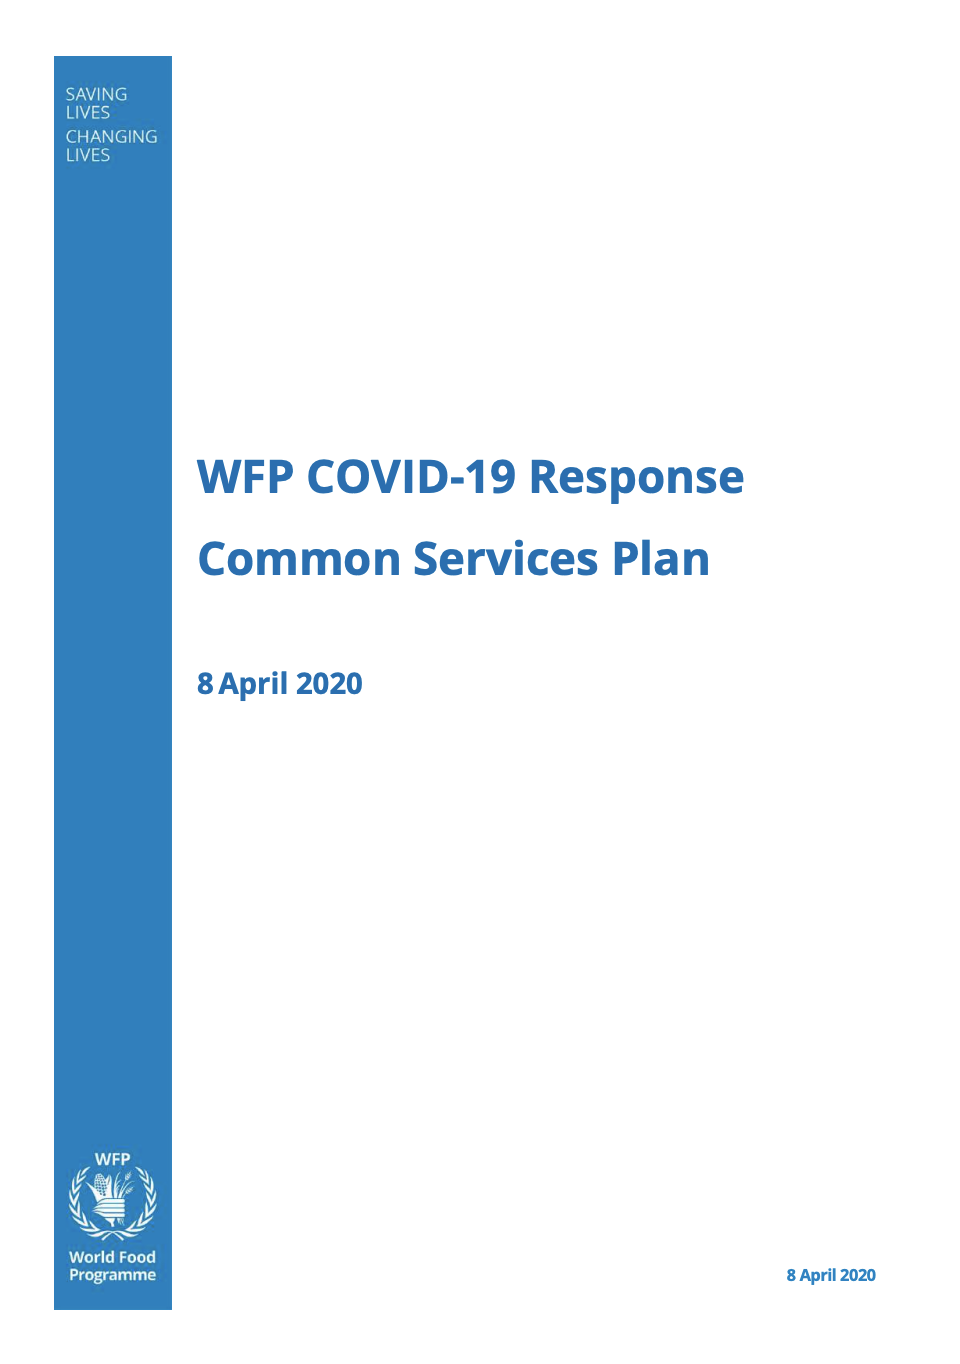 WFP COVID-19 Common Services Plan